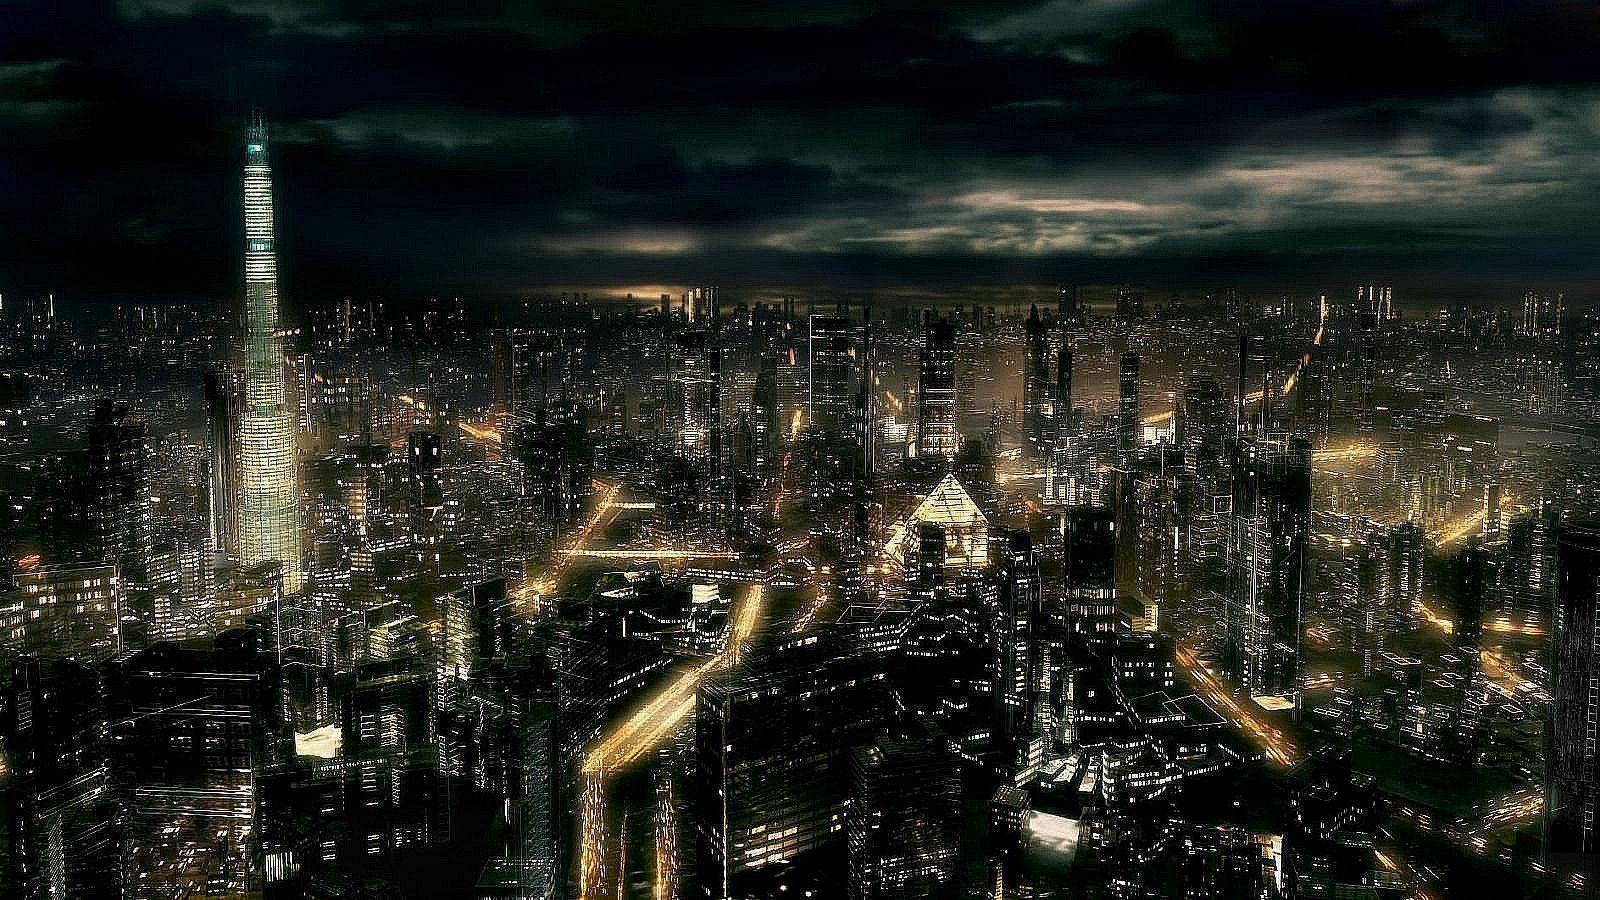 Dark City At Night Full Hd Wallpapers 1600x900PX ~ Wallpapers Hd